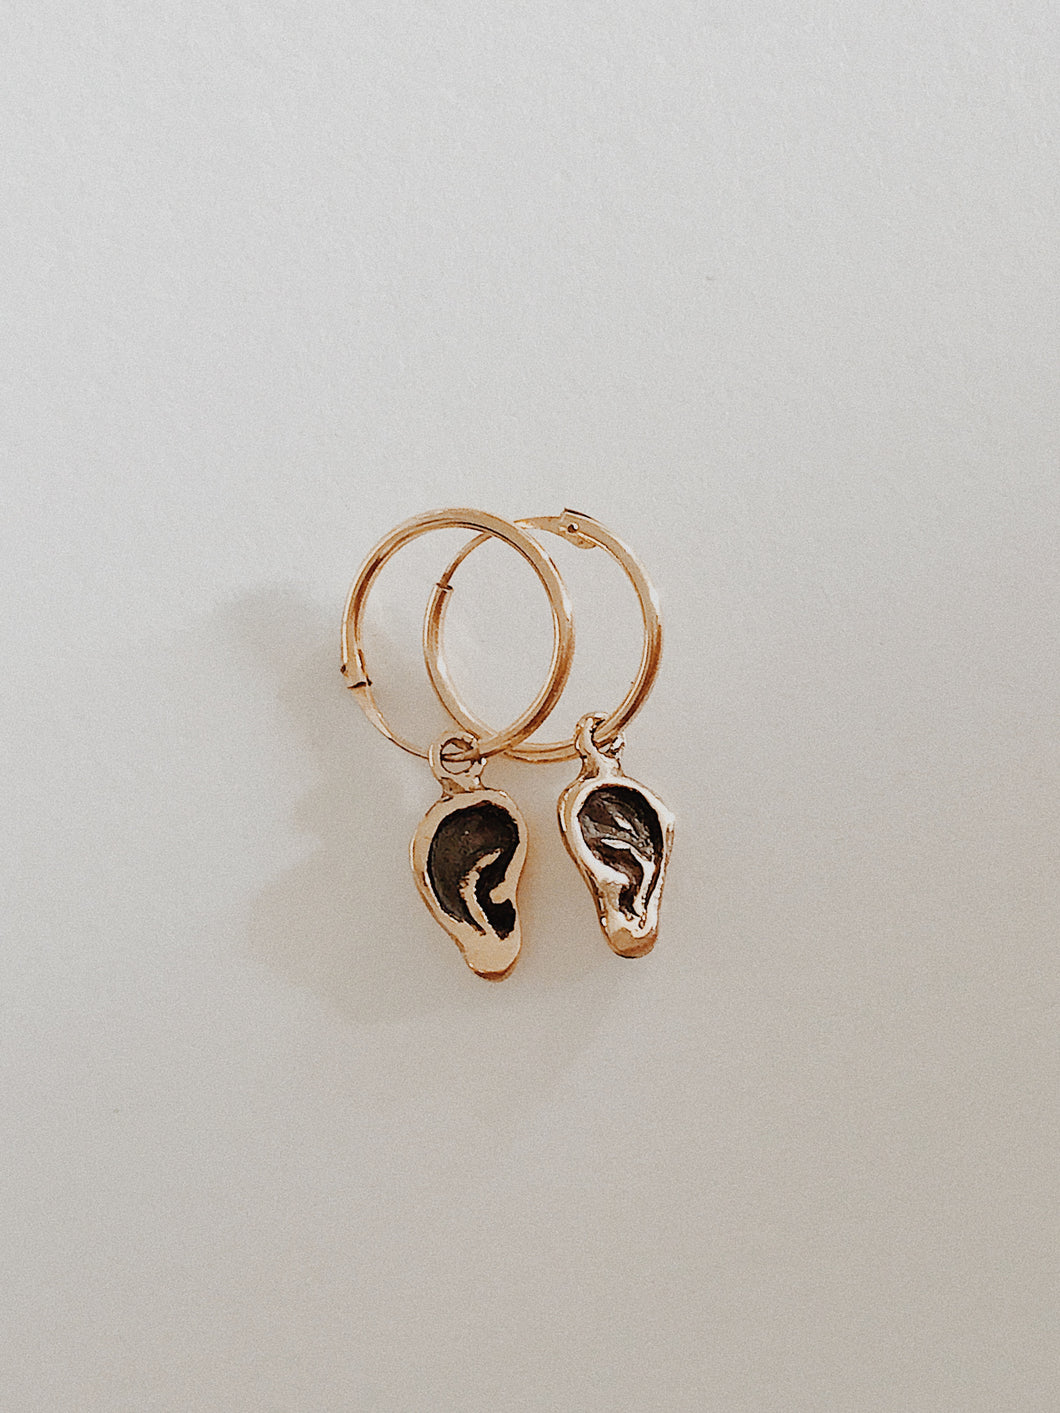 Gold ear earrings (9 carat)